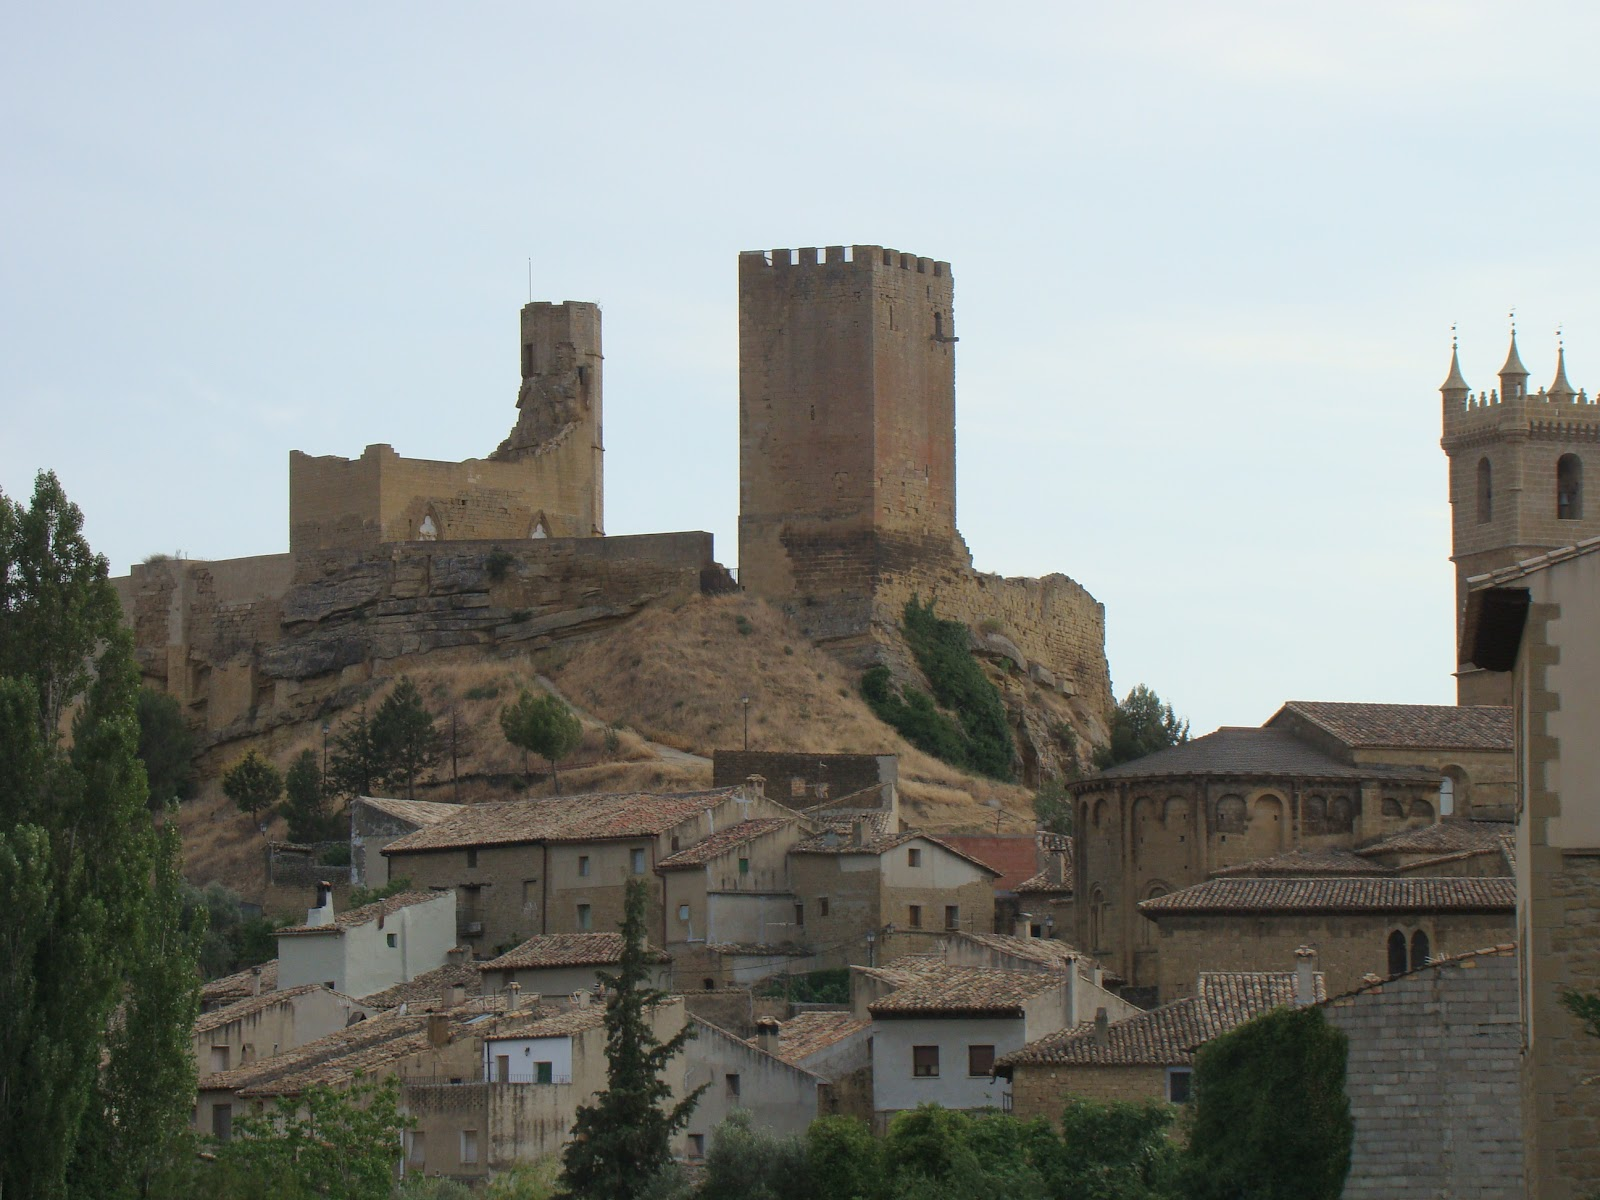 Uncastillo Spain  city photo : Uncastillo .Spain. | Castillos en España | Pinterest